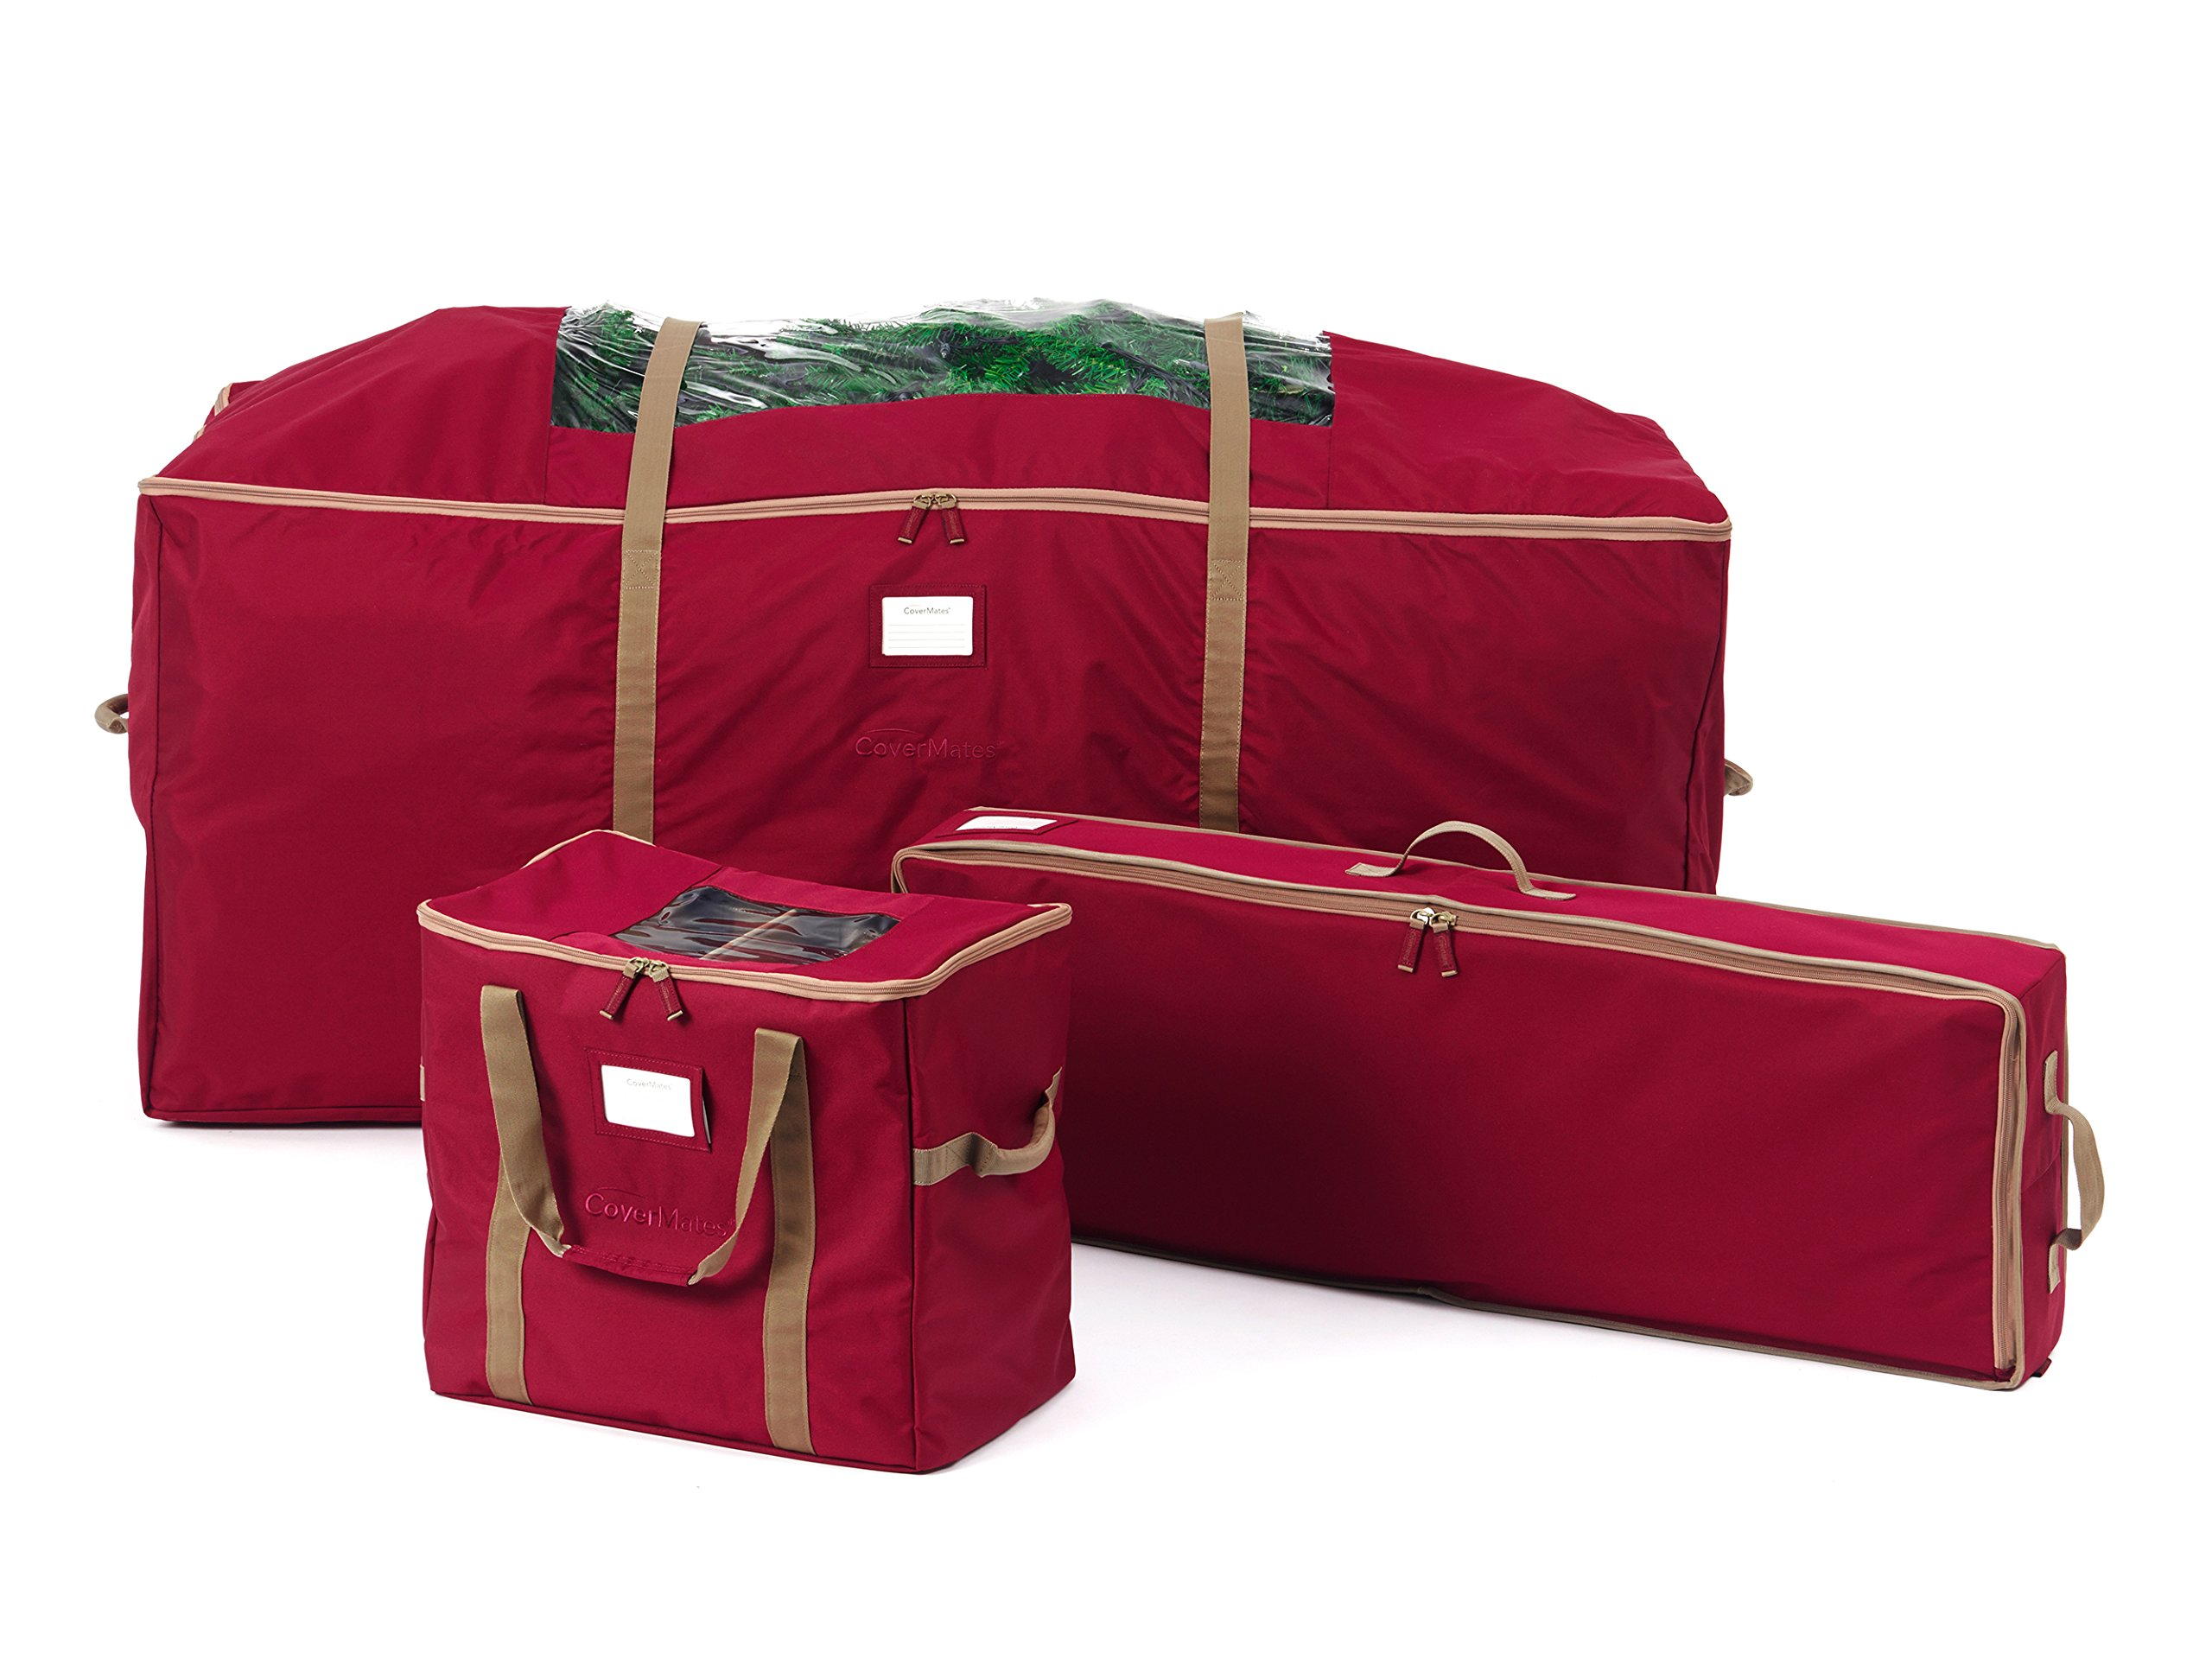 CoverMates – 3PC Holiday Storage Set (48'' Tree Storage Bag + Deluxe Gift Wrap + 60PC Ornament Storage Bag) – 3 Year Warranty- Red by CoverMates